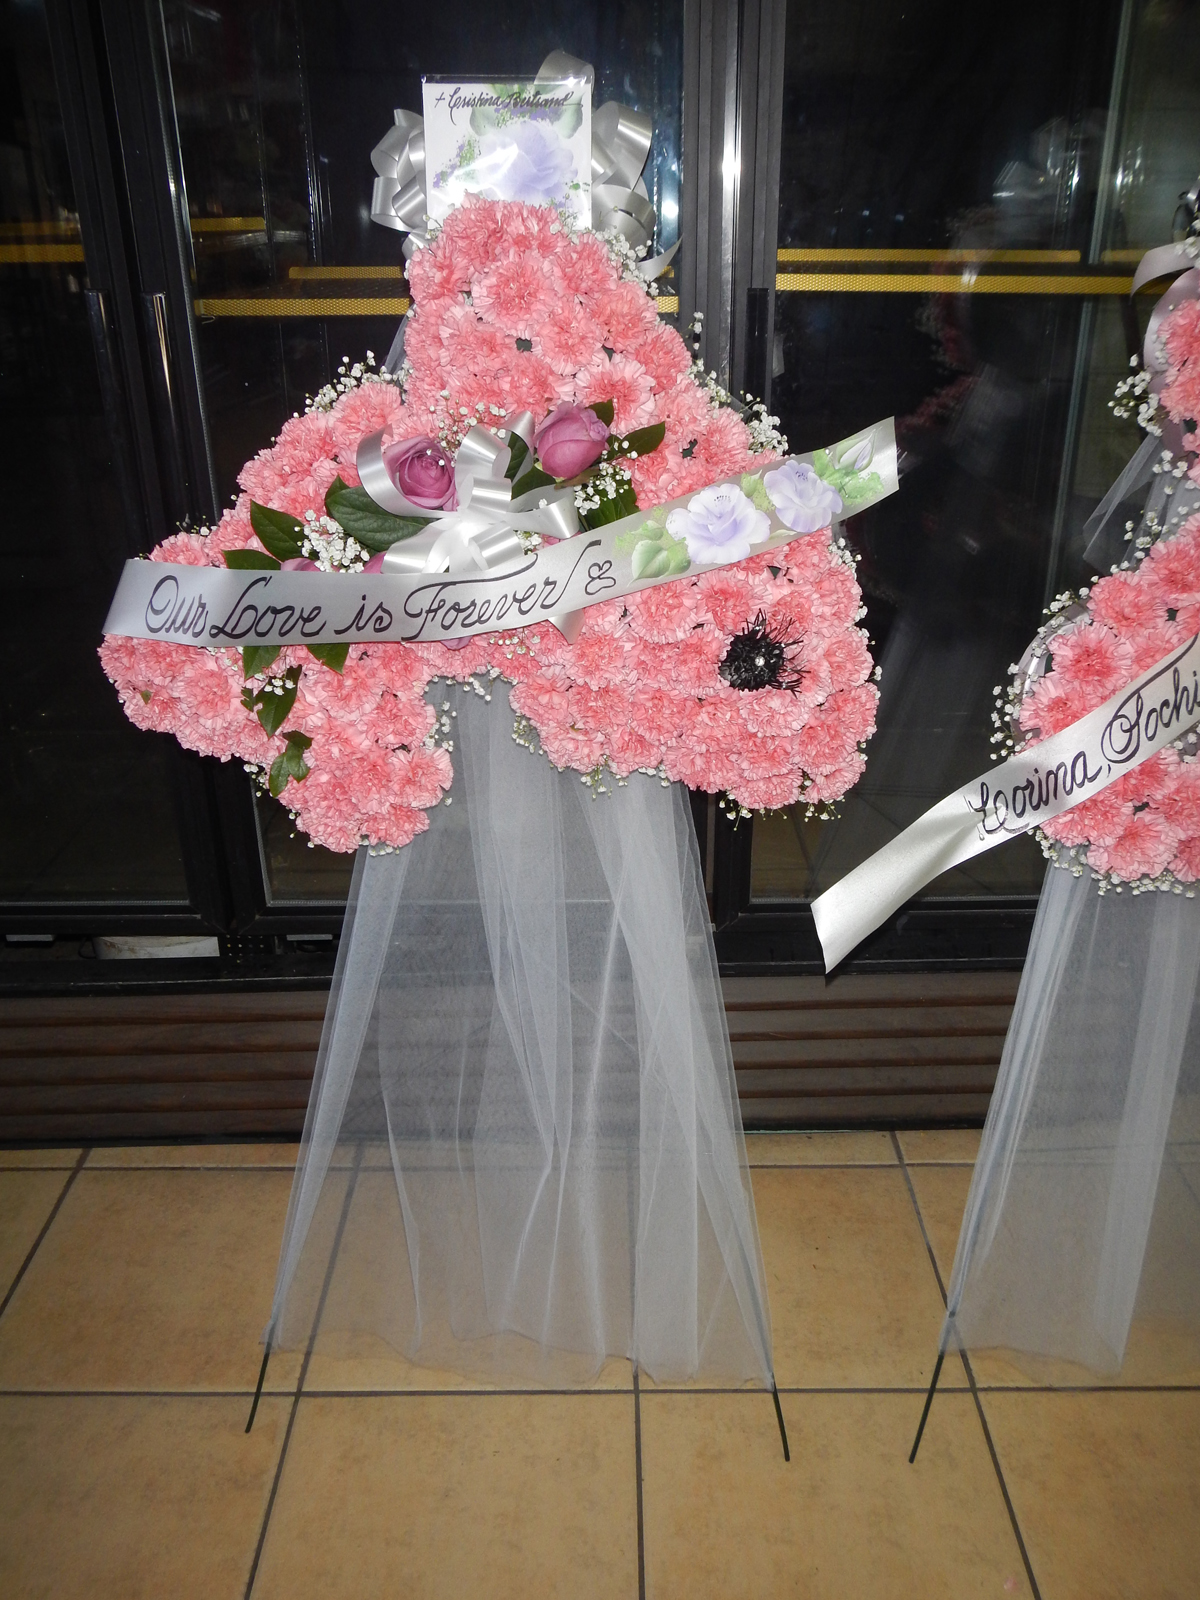 Carnation Memory Wreath